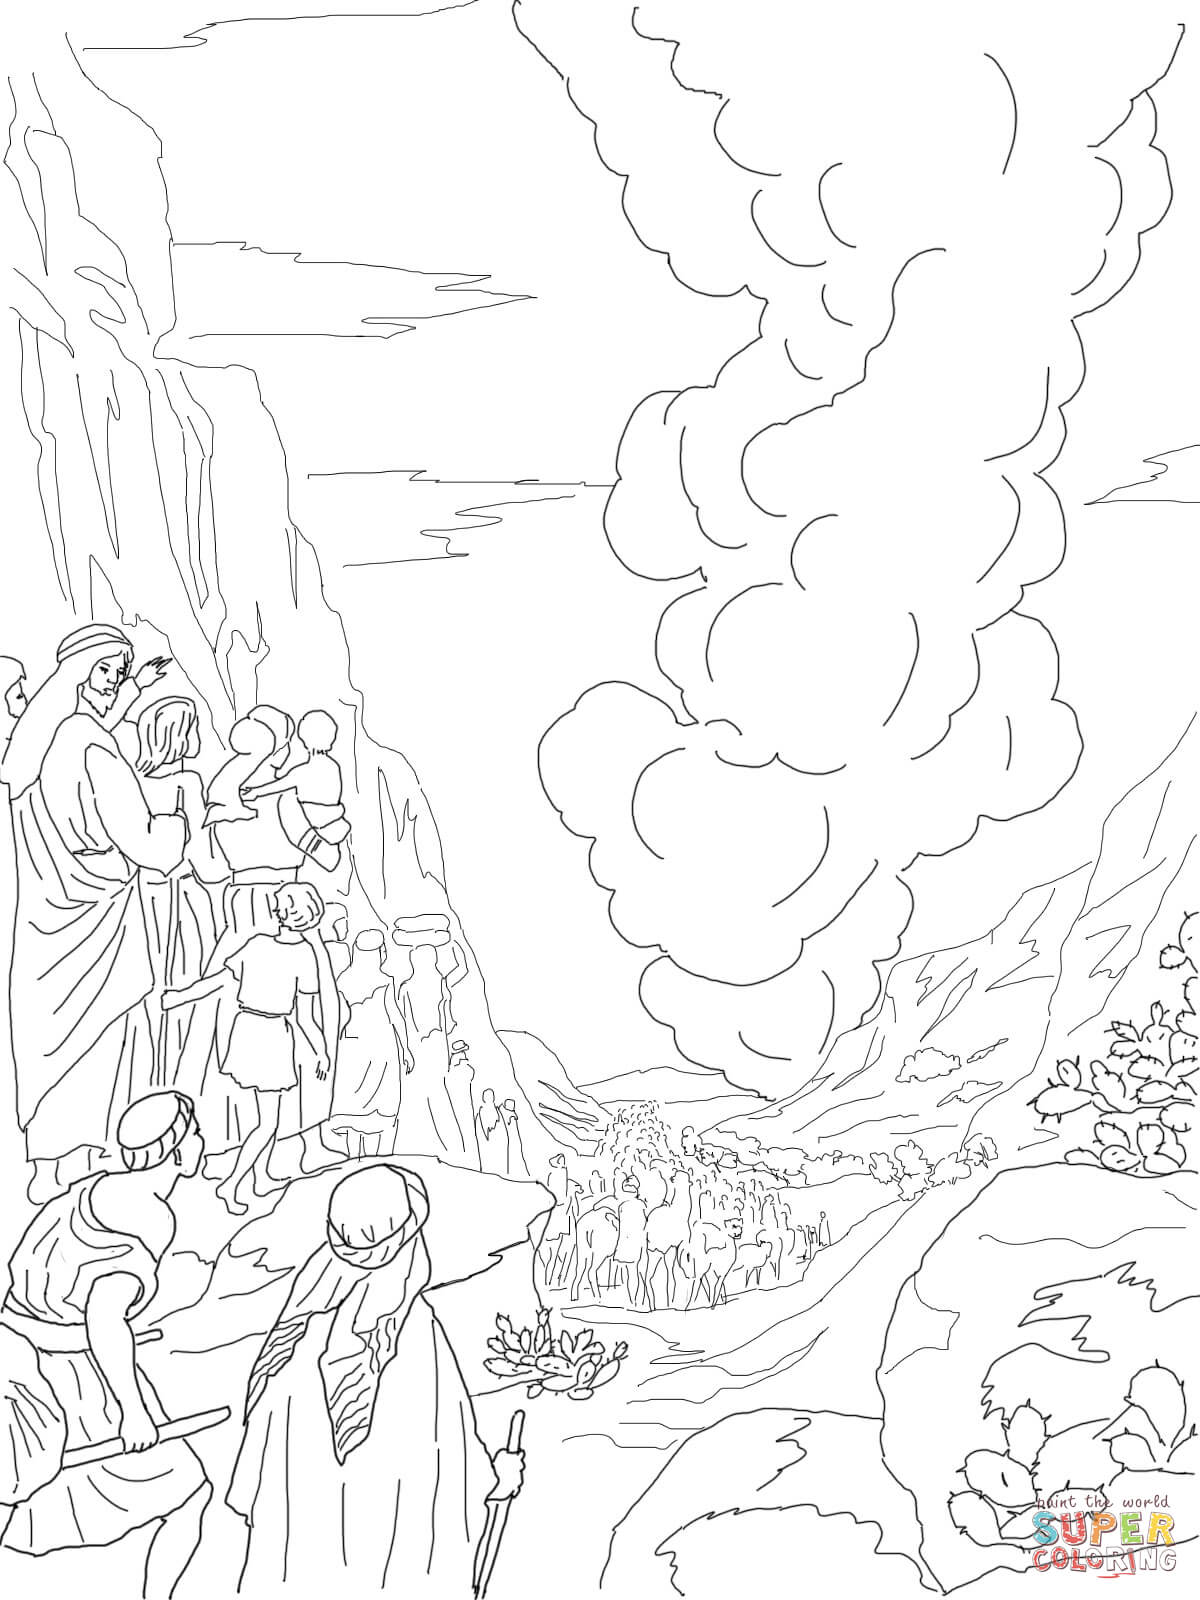 Tabernacle Coloring Sheet Coloring Pages